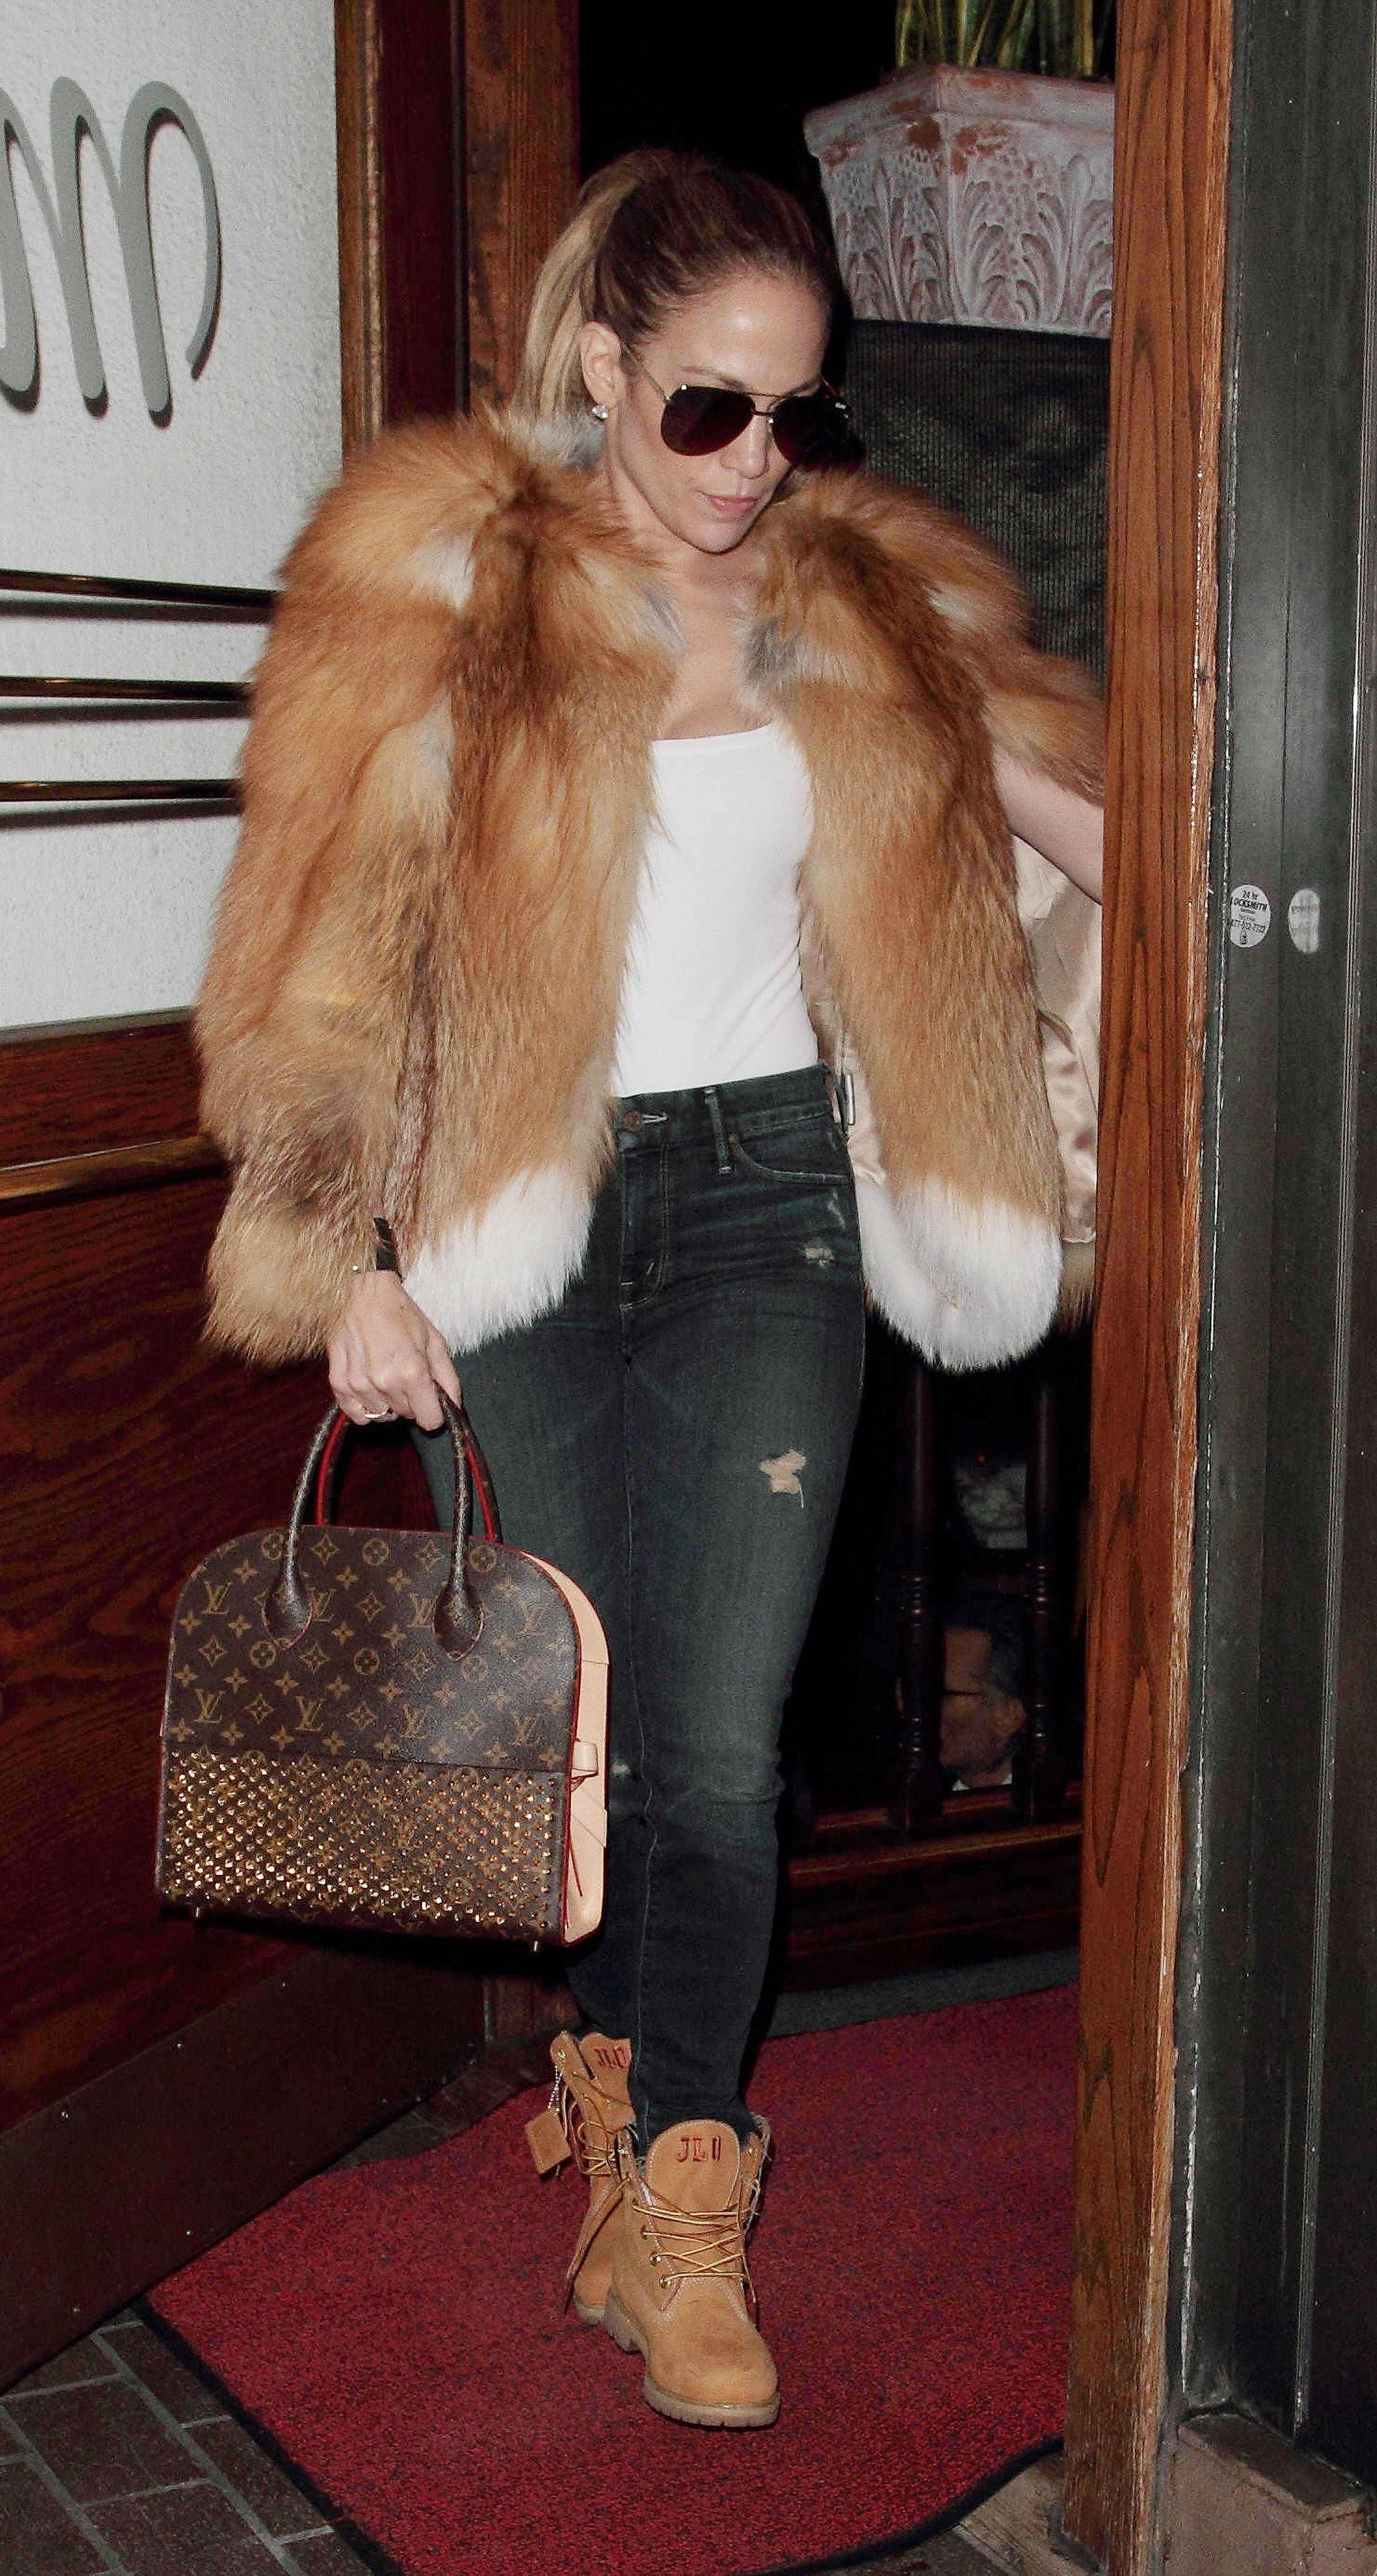 To acquire 10 looks fur best of the week picture trends